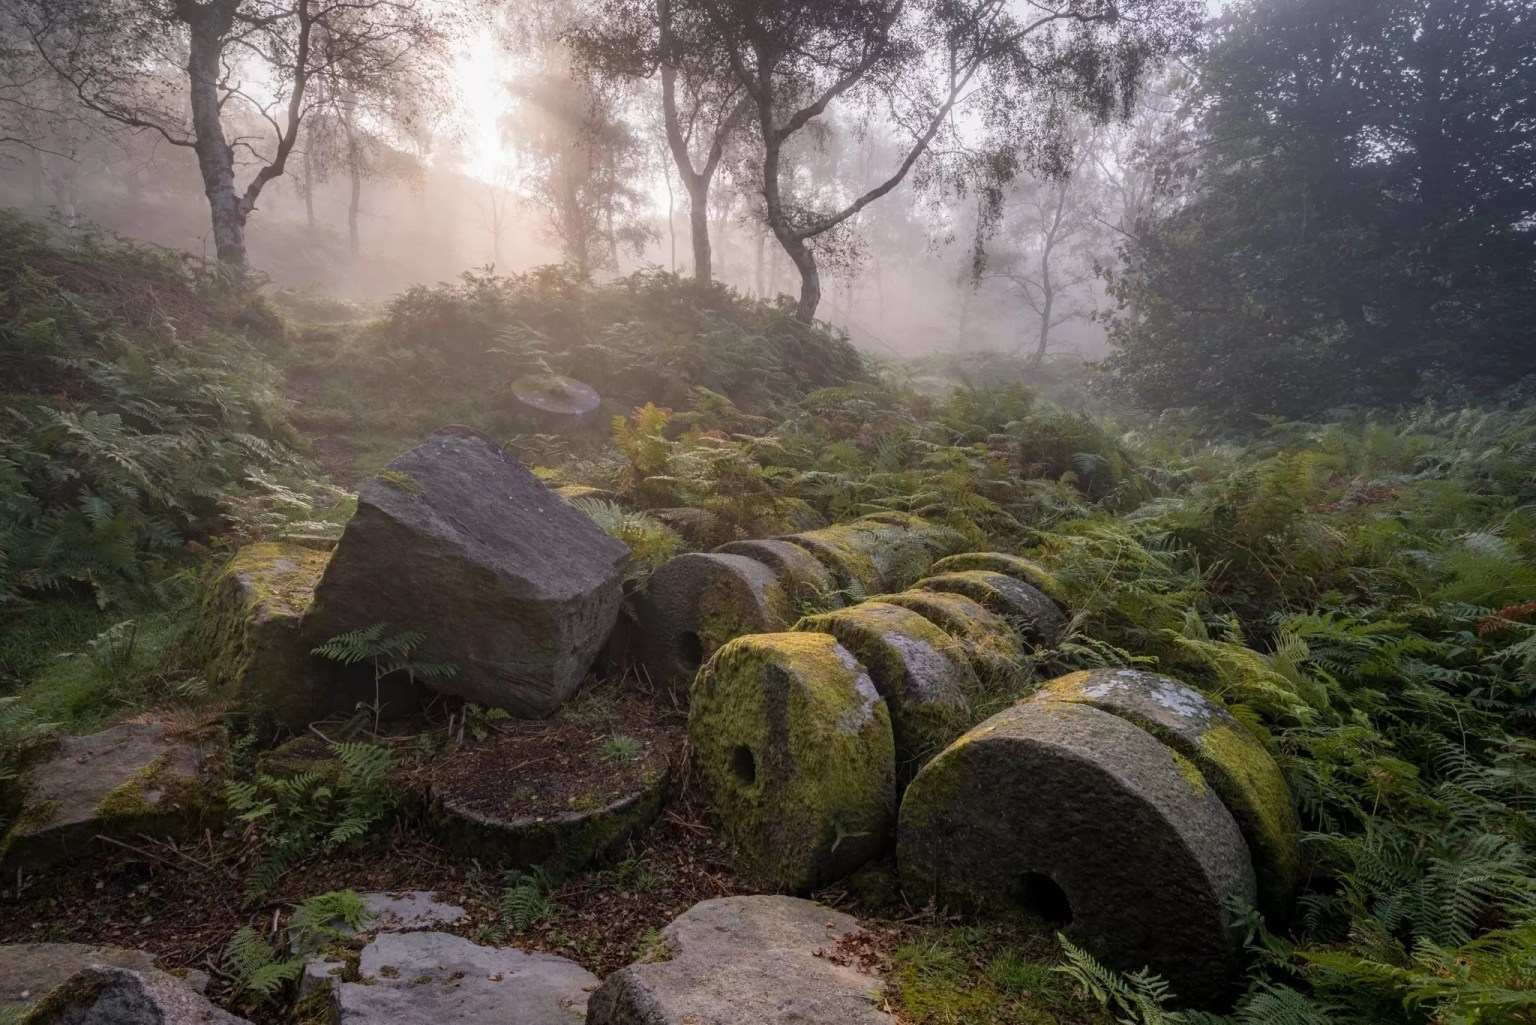 Bole Hill Millstones in the Mist - Autumn in the Peak District Photography Workshop